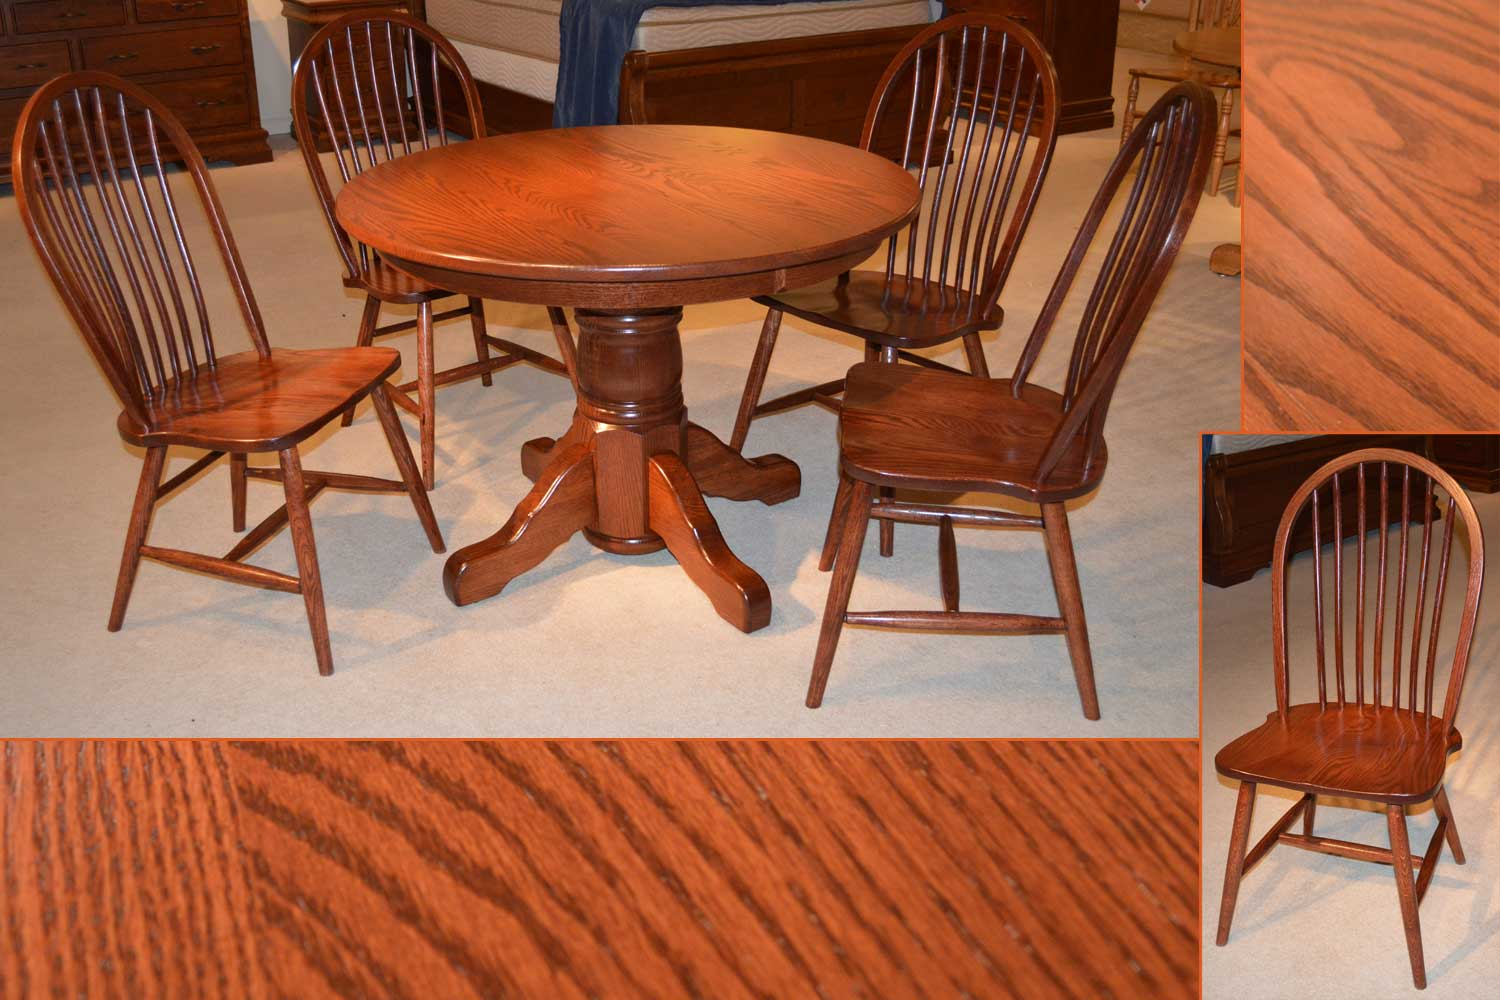 pedestal table and chairs foldable chair set amish furniture michigan single denver side